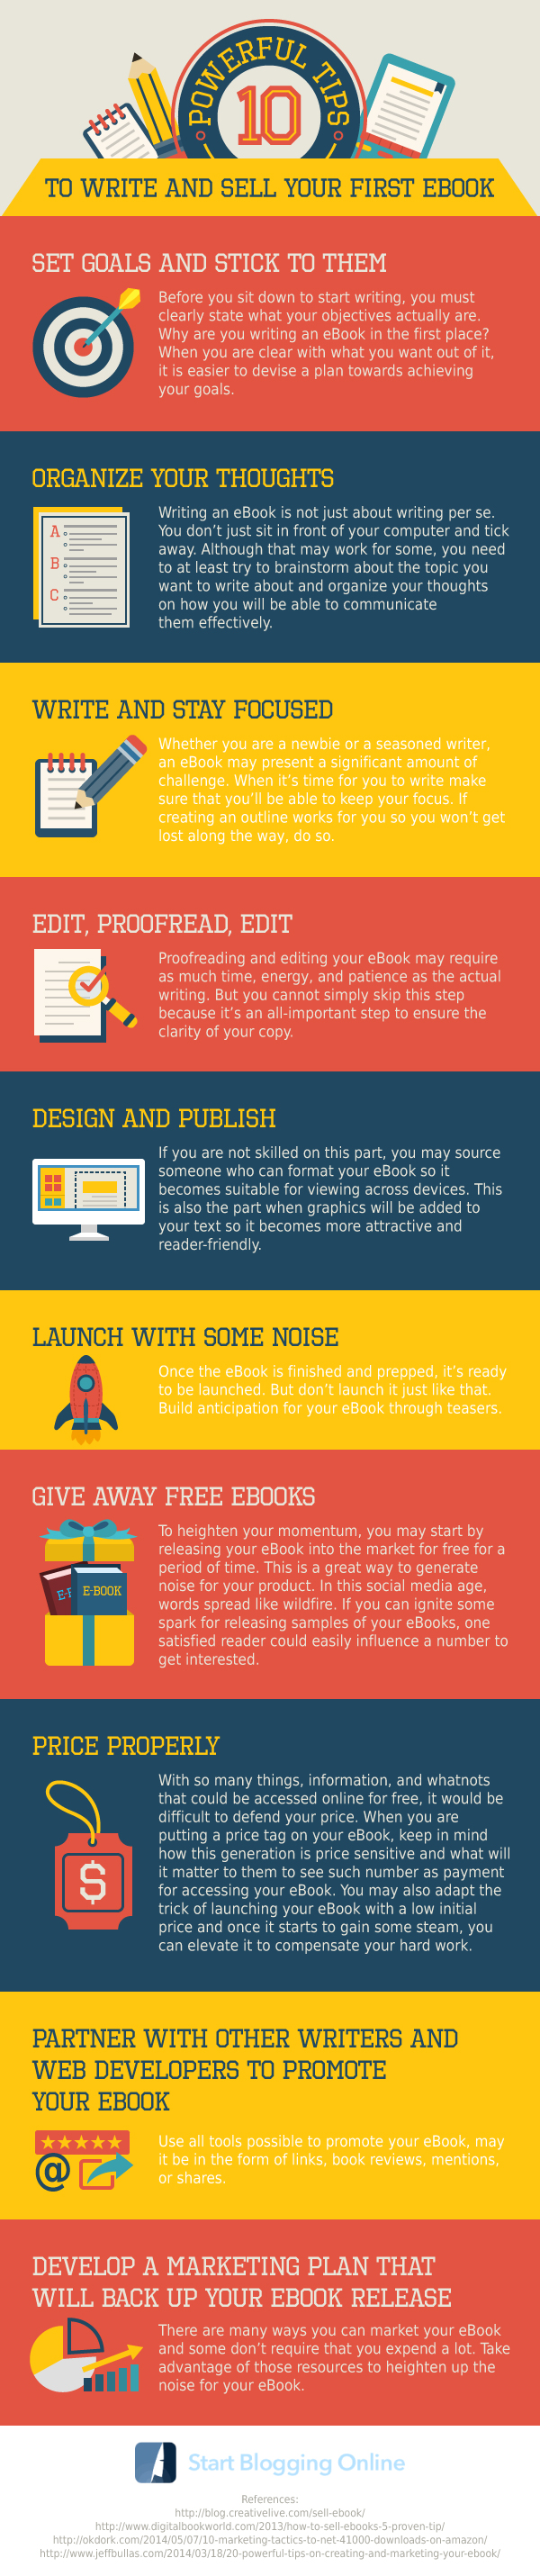 10 Powerful Tips to Write and Sell Your First eBook (SBO)